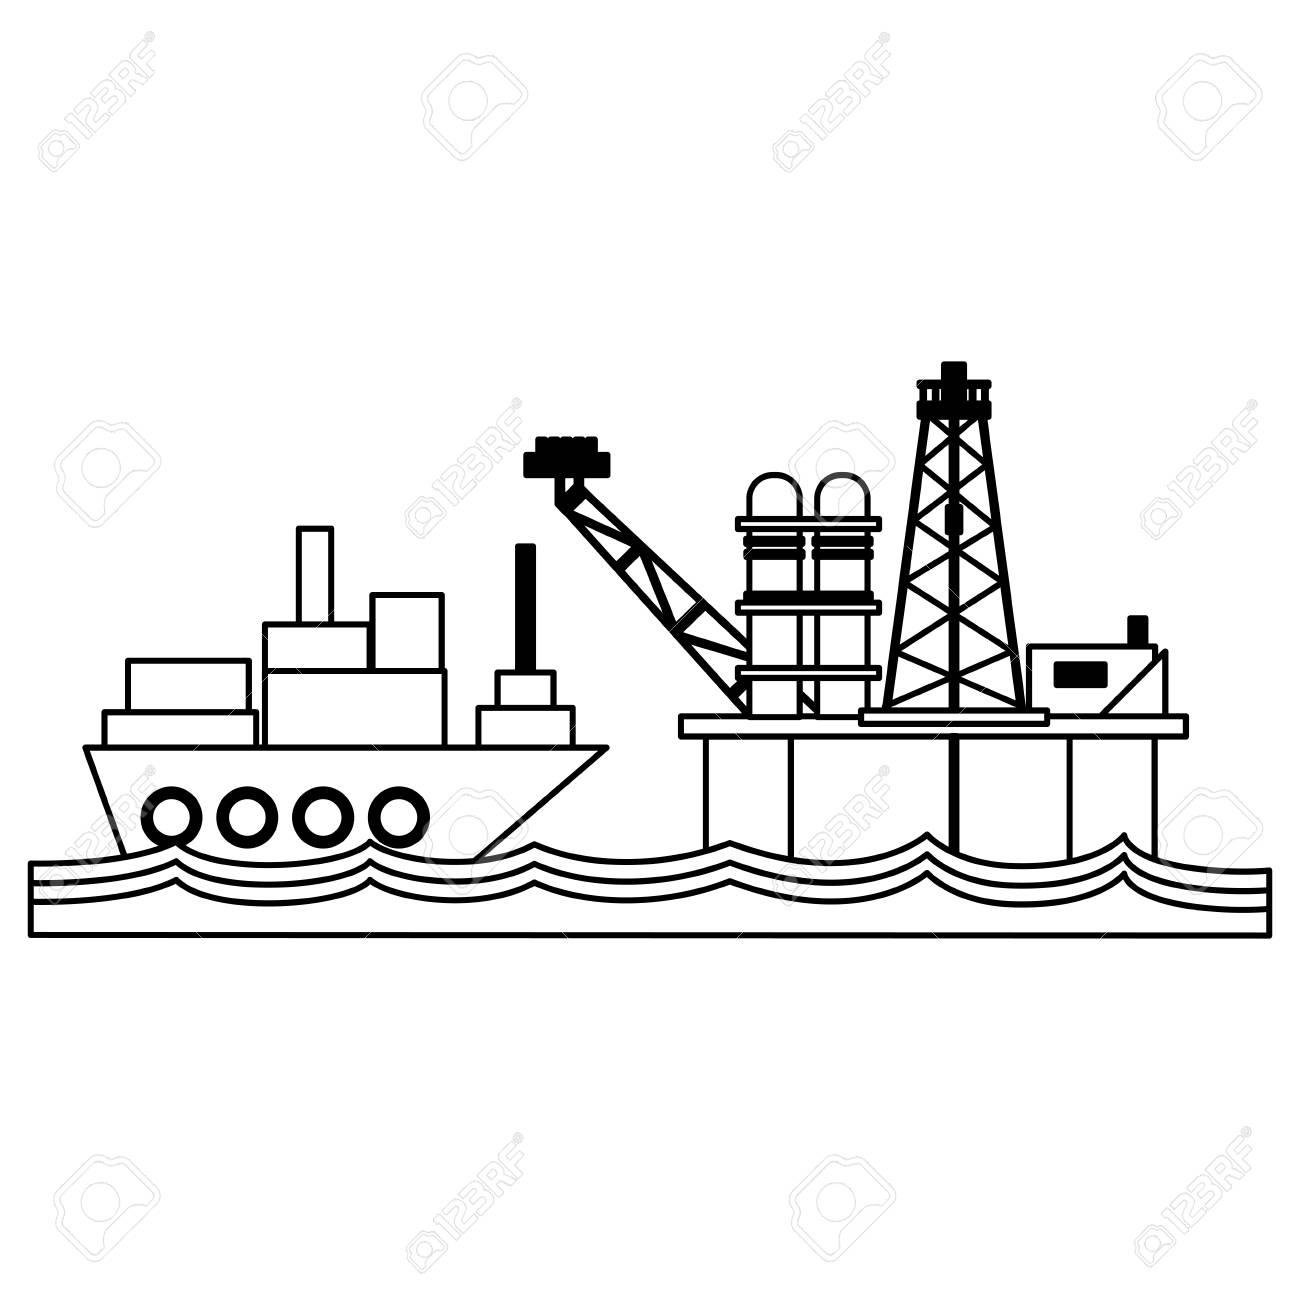 hight resolution of petroleum refinery pump in the sea and freighter ship vector illustration graphic design stock vector